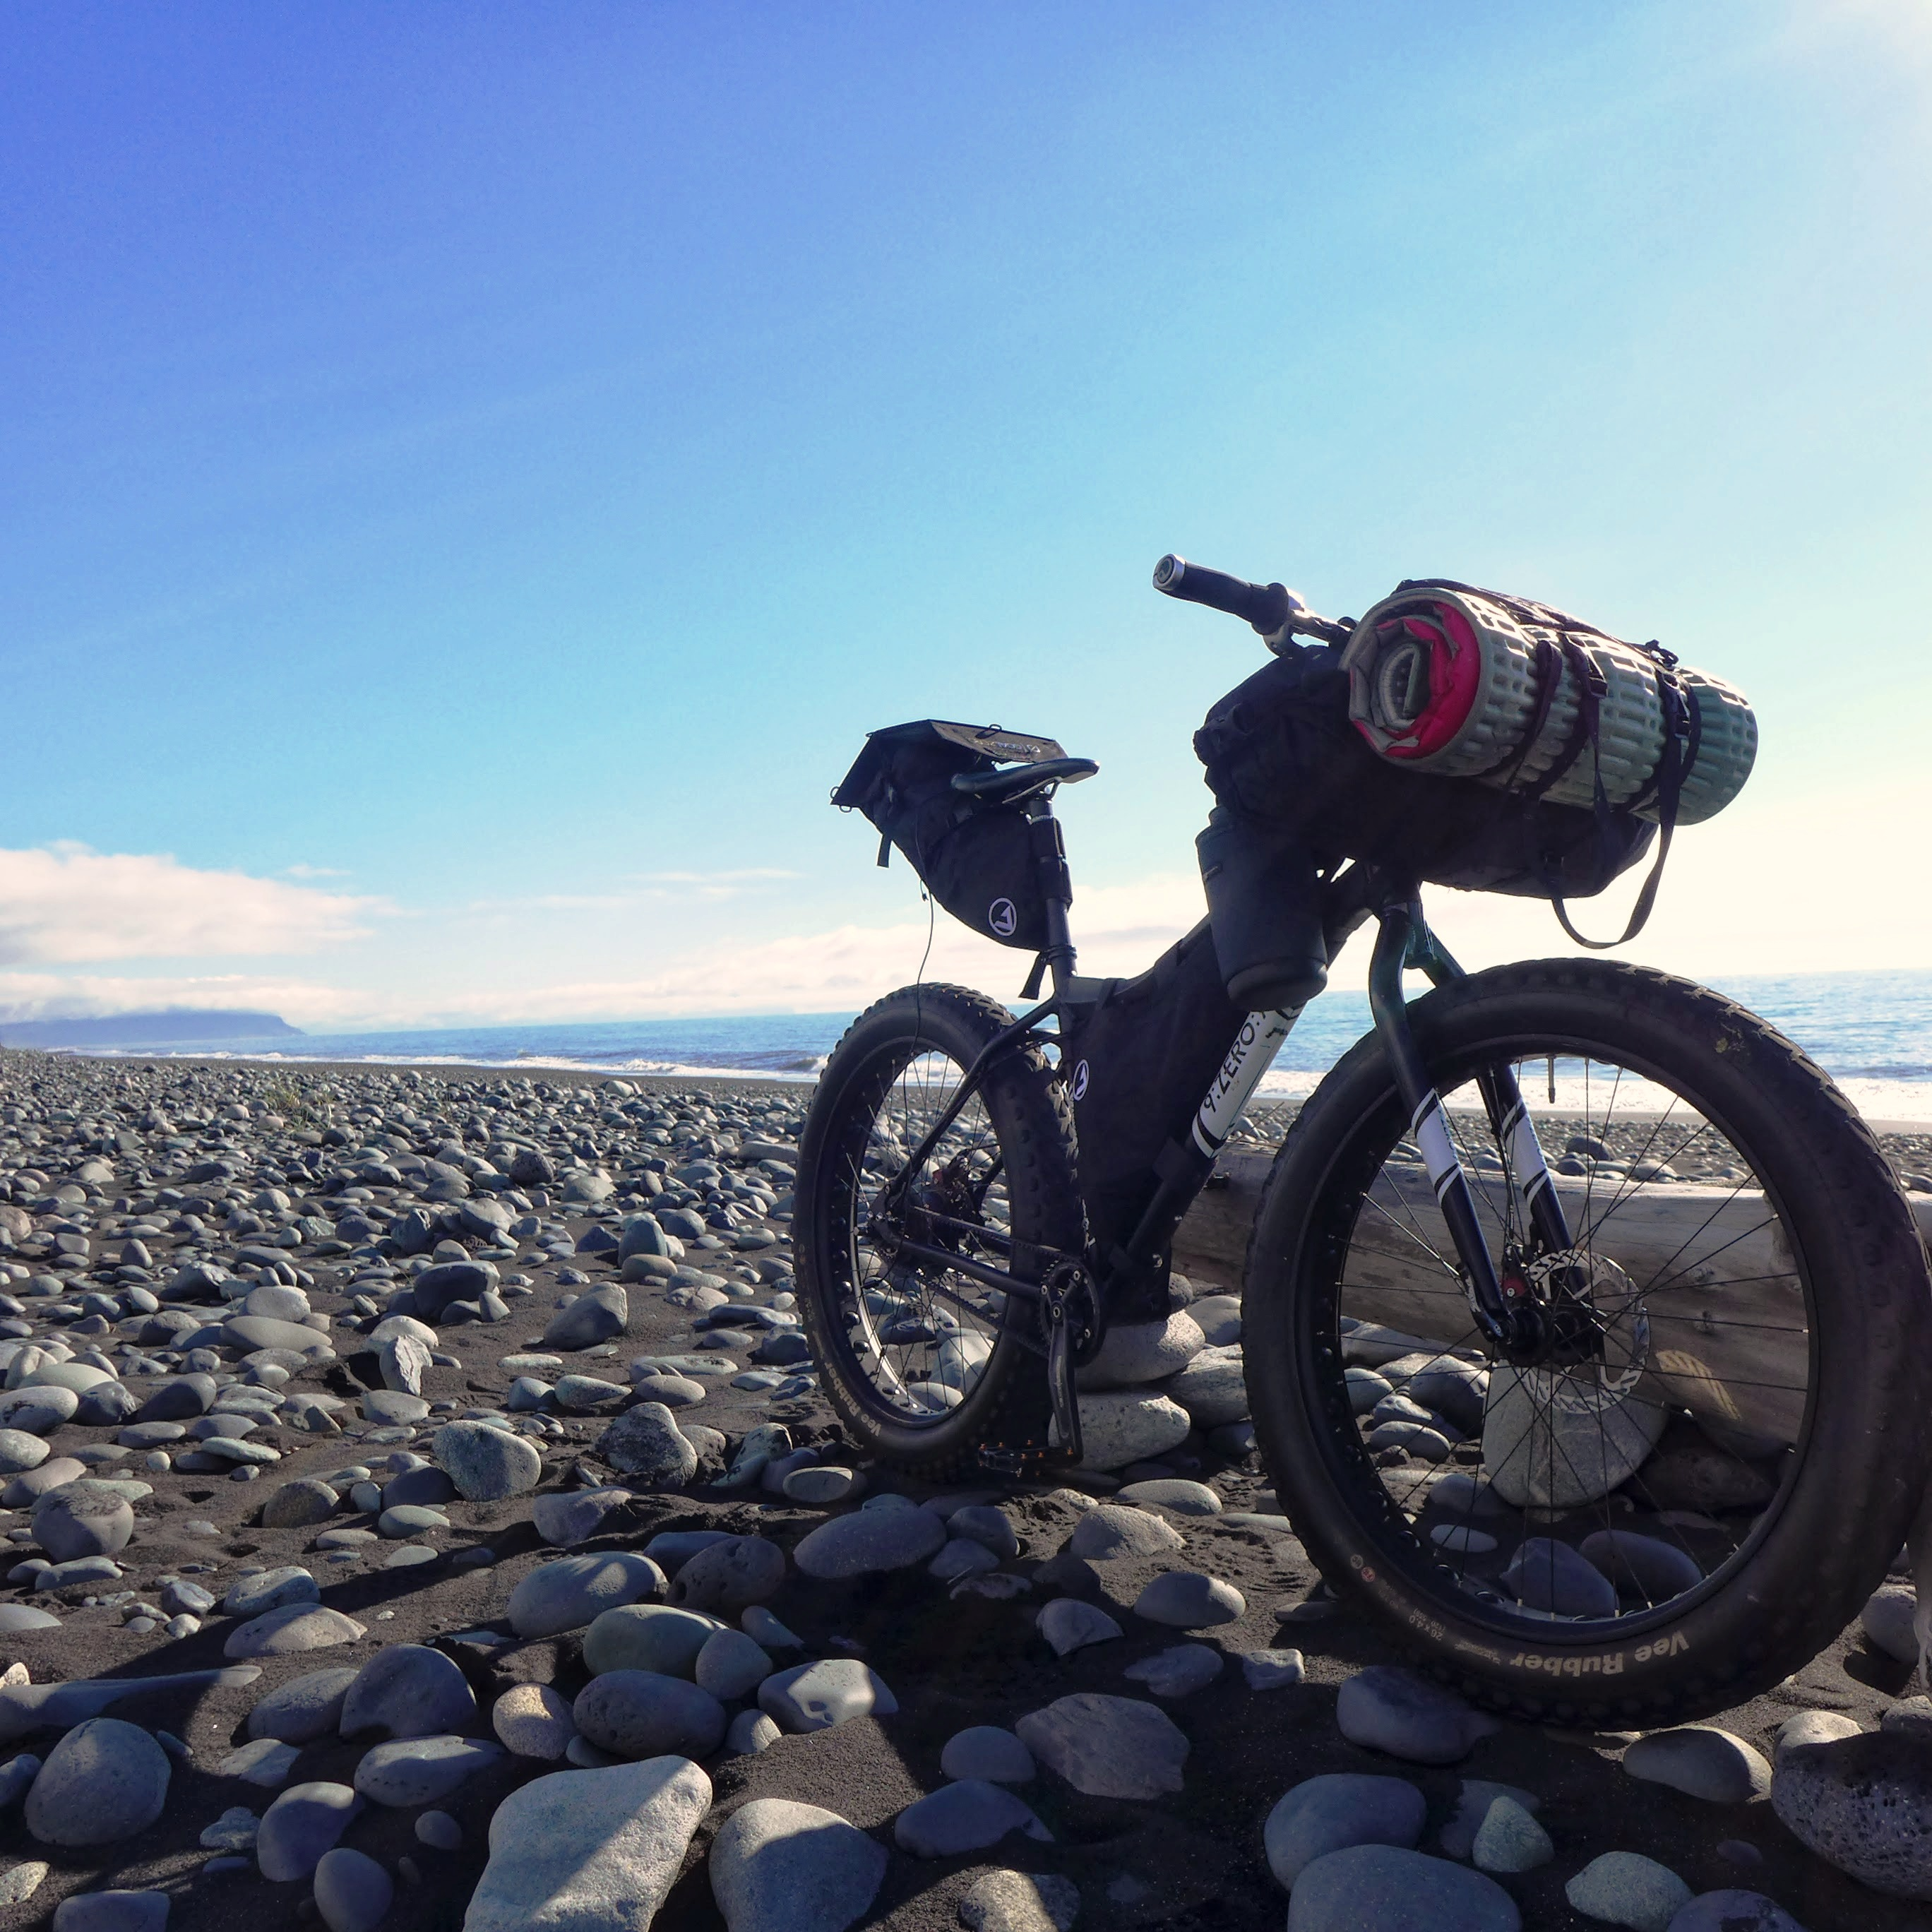 Unchained Iceland_bike on beach with babyheads